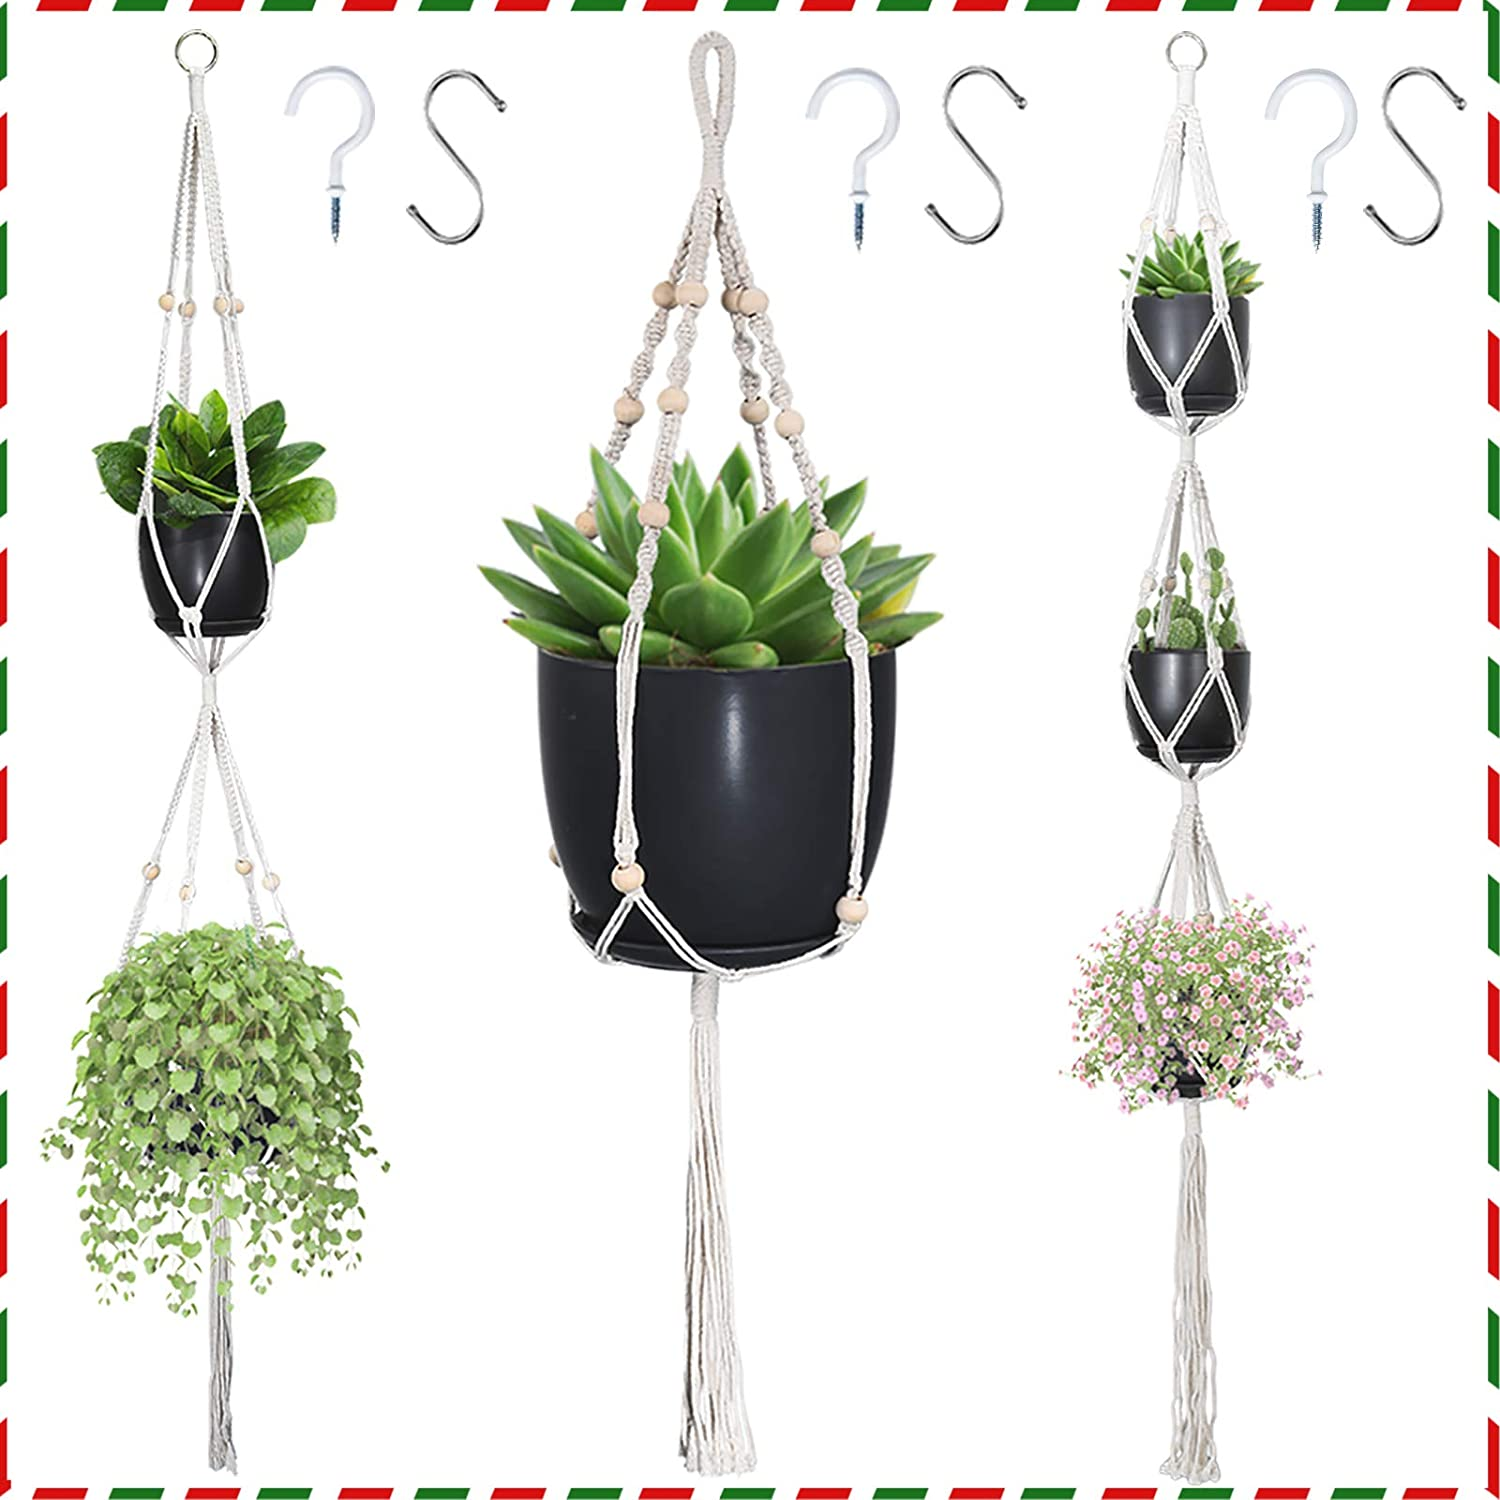 Macrame Plant Hangers Hanging Max 81% OFF Planters Set 3 H Daily bargain sale 6 with Hooks of